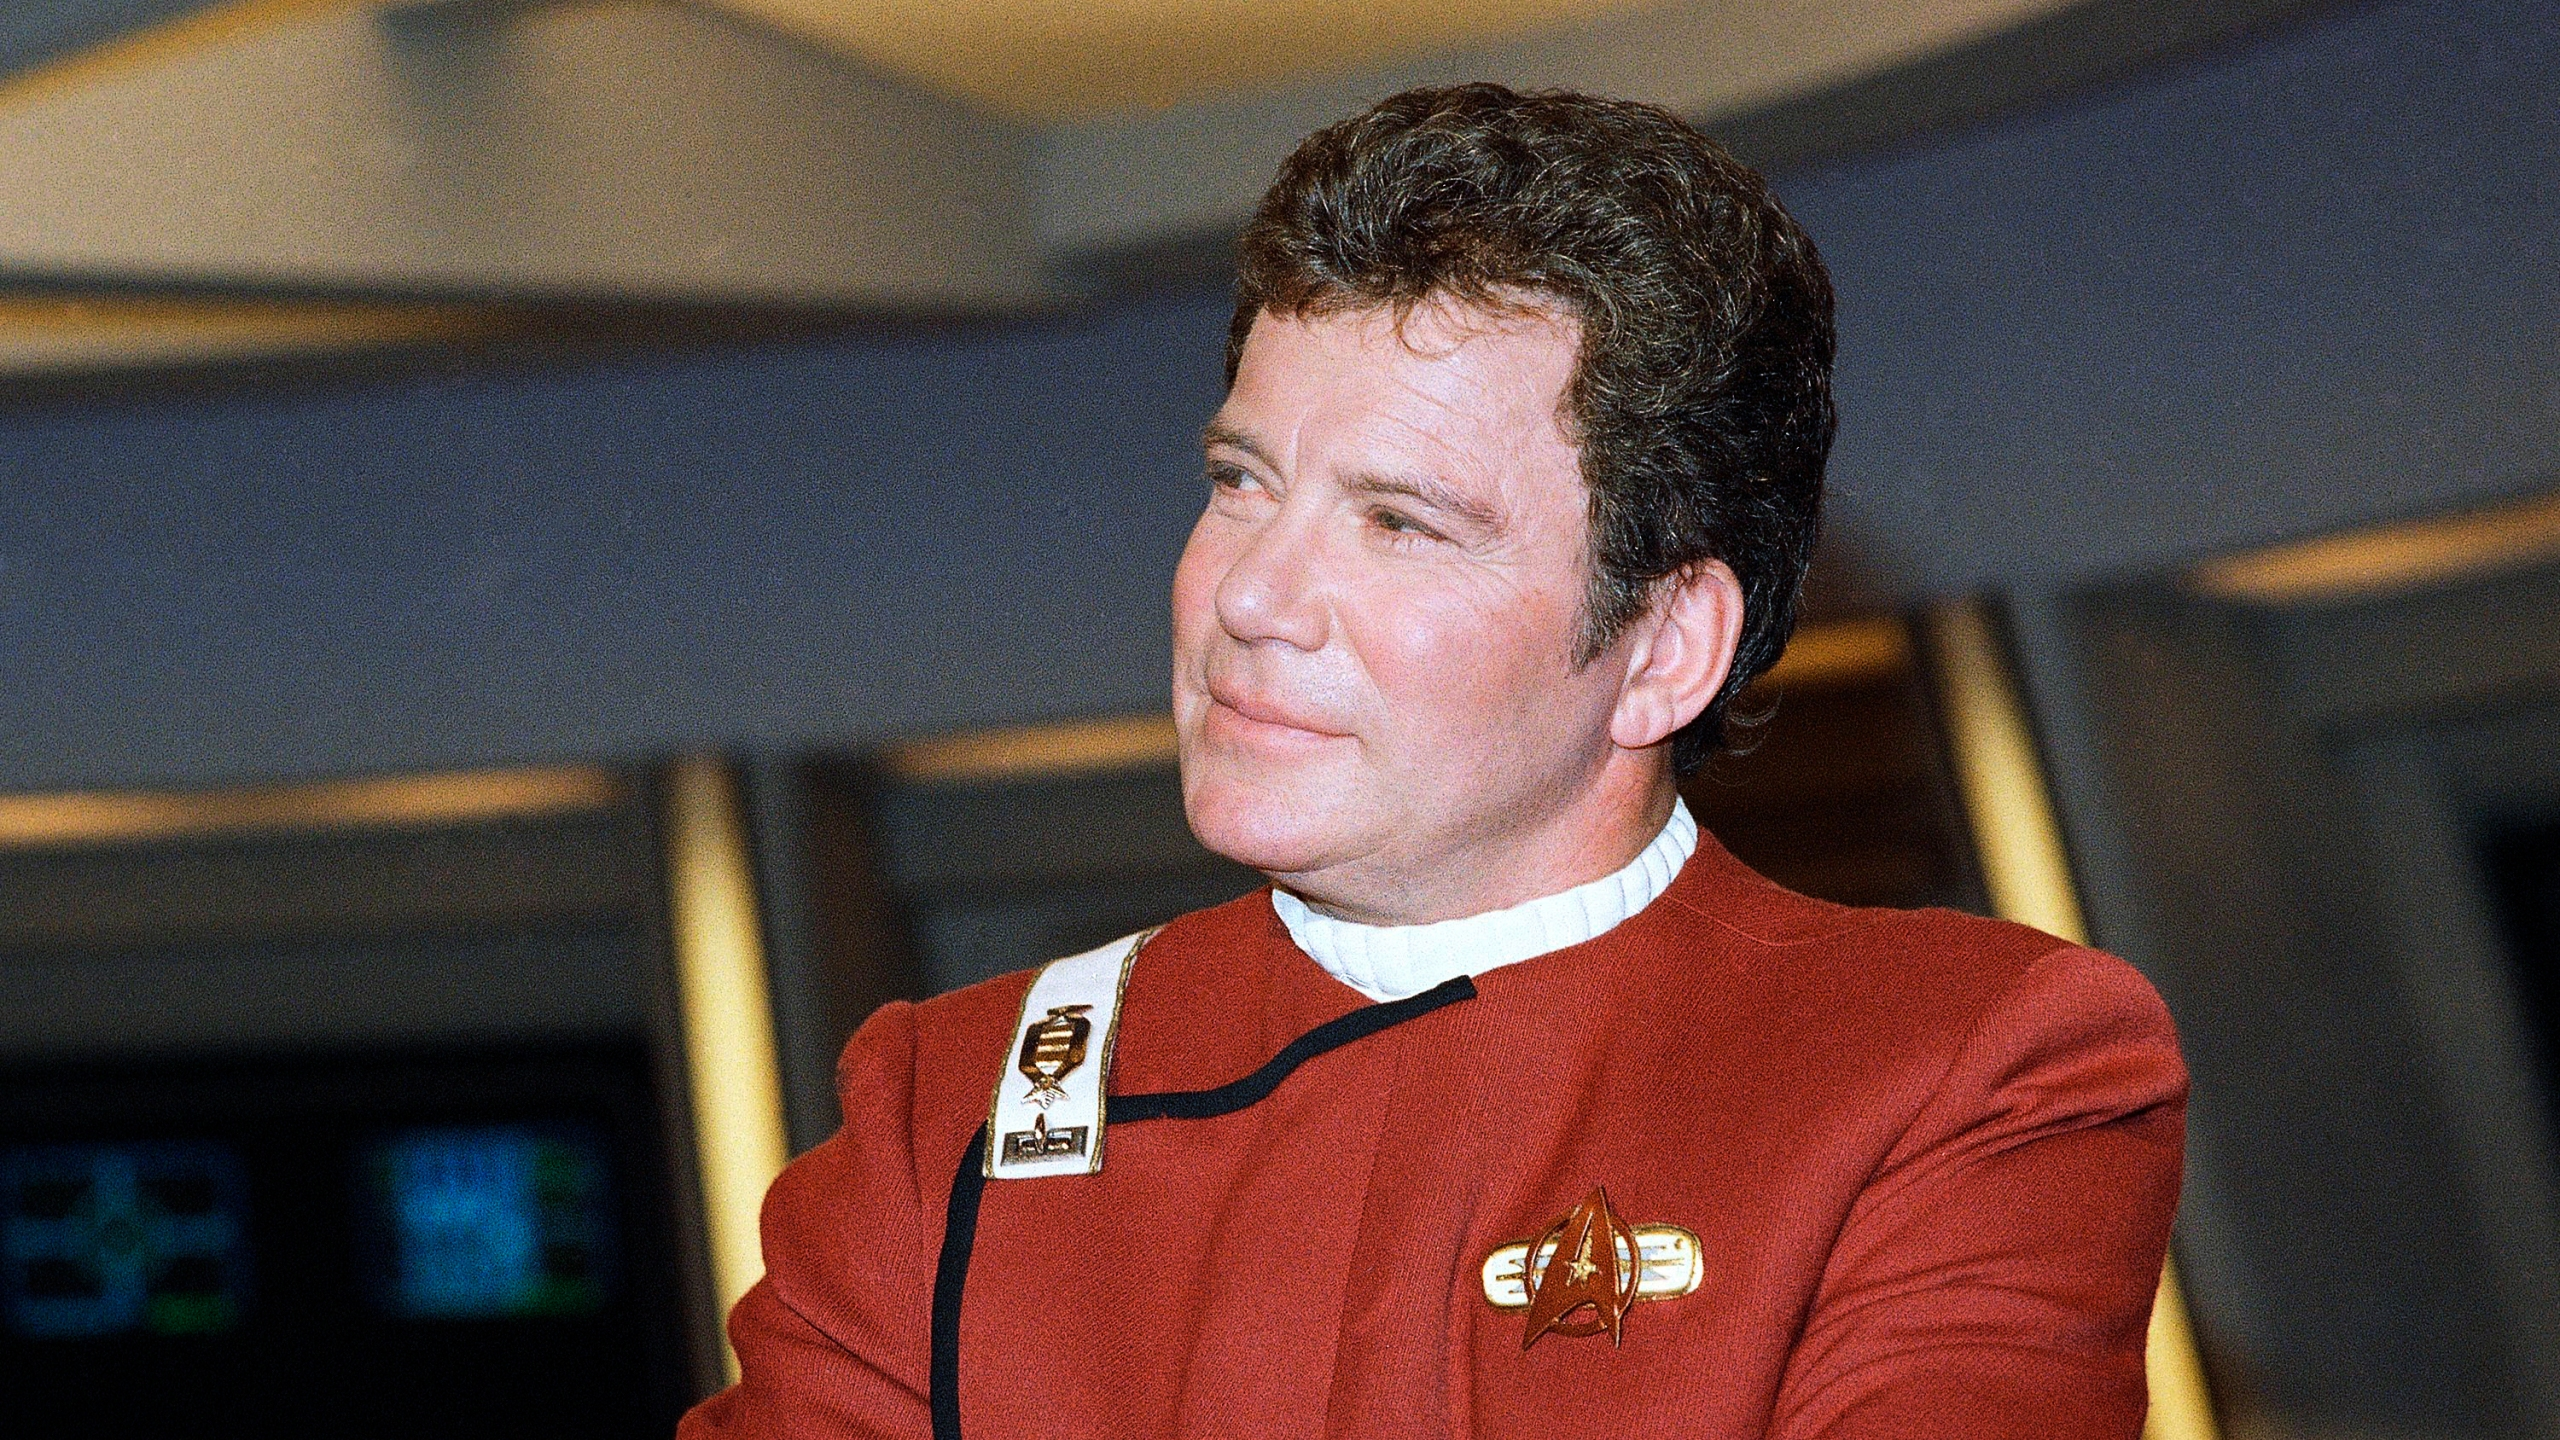 """In this 1988 file photo, William Shatner, who portrays Capt. James T. Kirk, attends a photo opportunity for the film """"Star Trek V: The Final Frontier."""" Star Trek's Captain Kirk is rocketing into space this month — boldly going where no other sci-fi actors have gone. Jeff Bezos' space travel company, Blue Origin, announced Monday, Oct. 4, 2021 that Shatner will blast off from West Texas on Oct. 12. (AP Photo/Bob Galbraith)"""